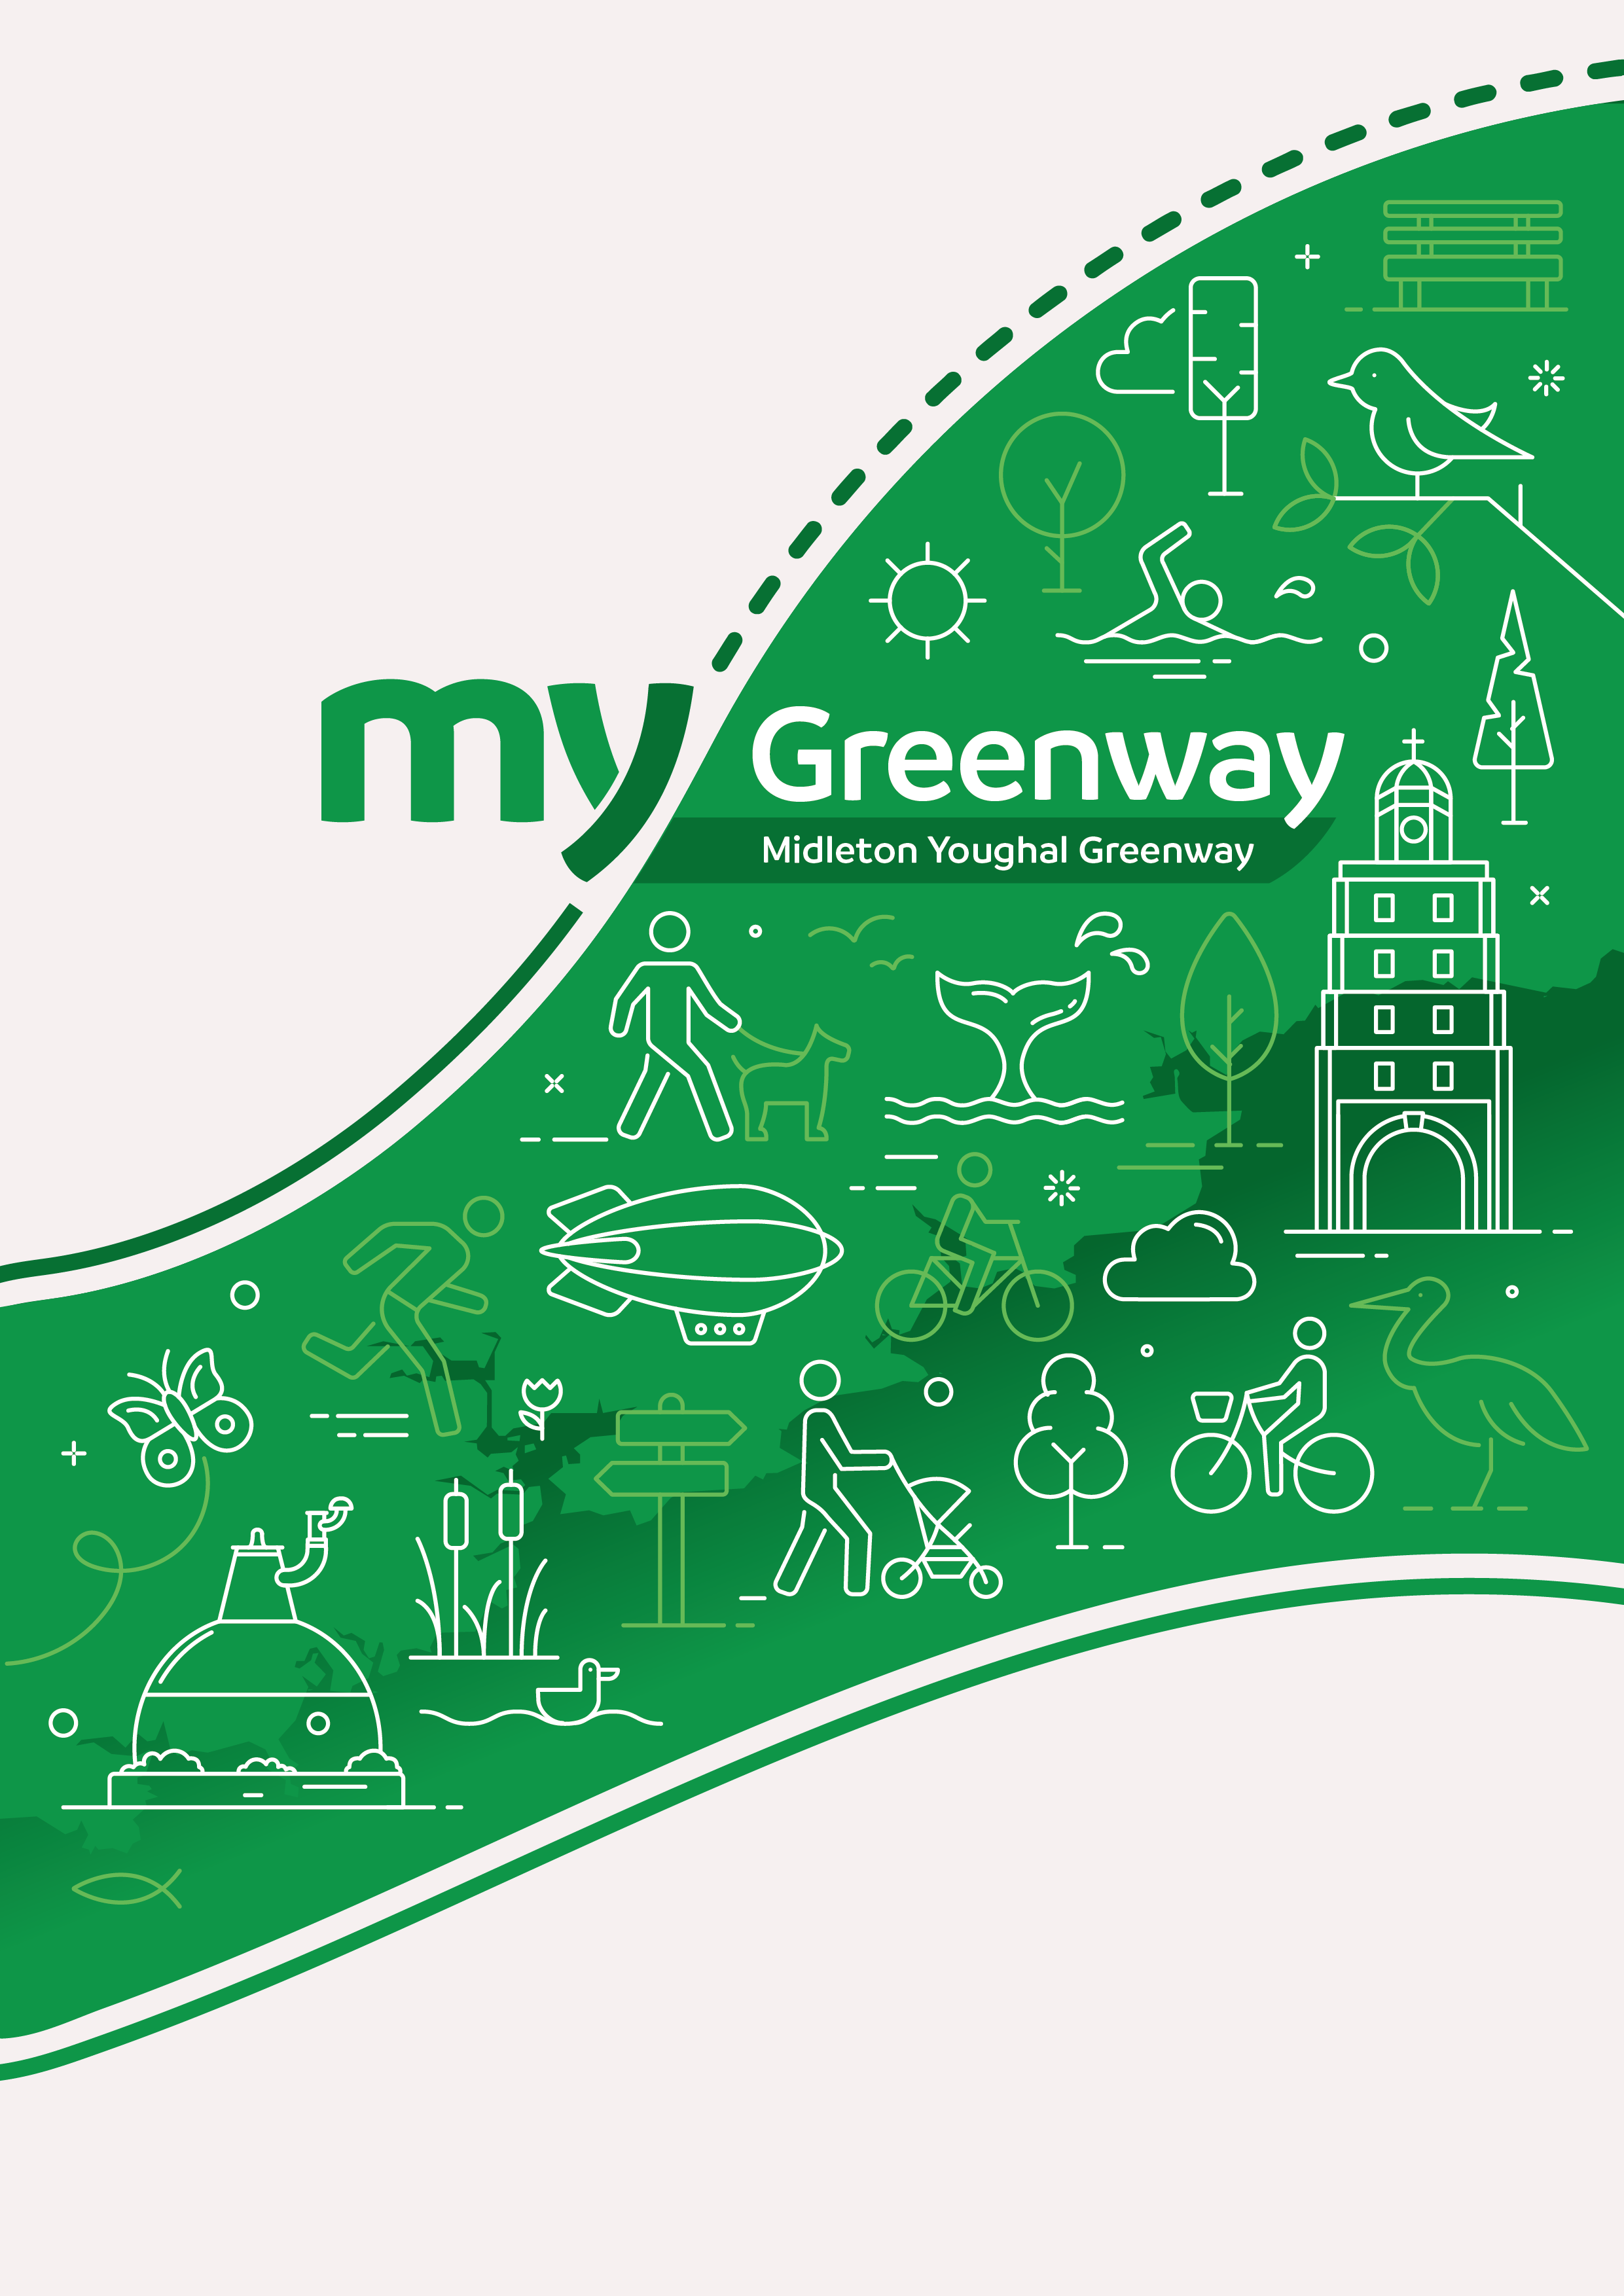 Midleton to Youghal Greenway  - Youghal County Council